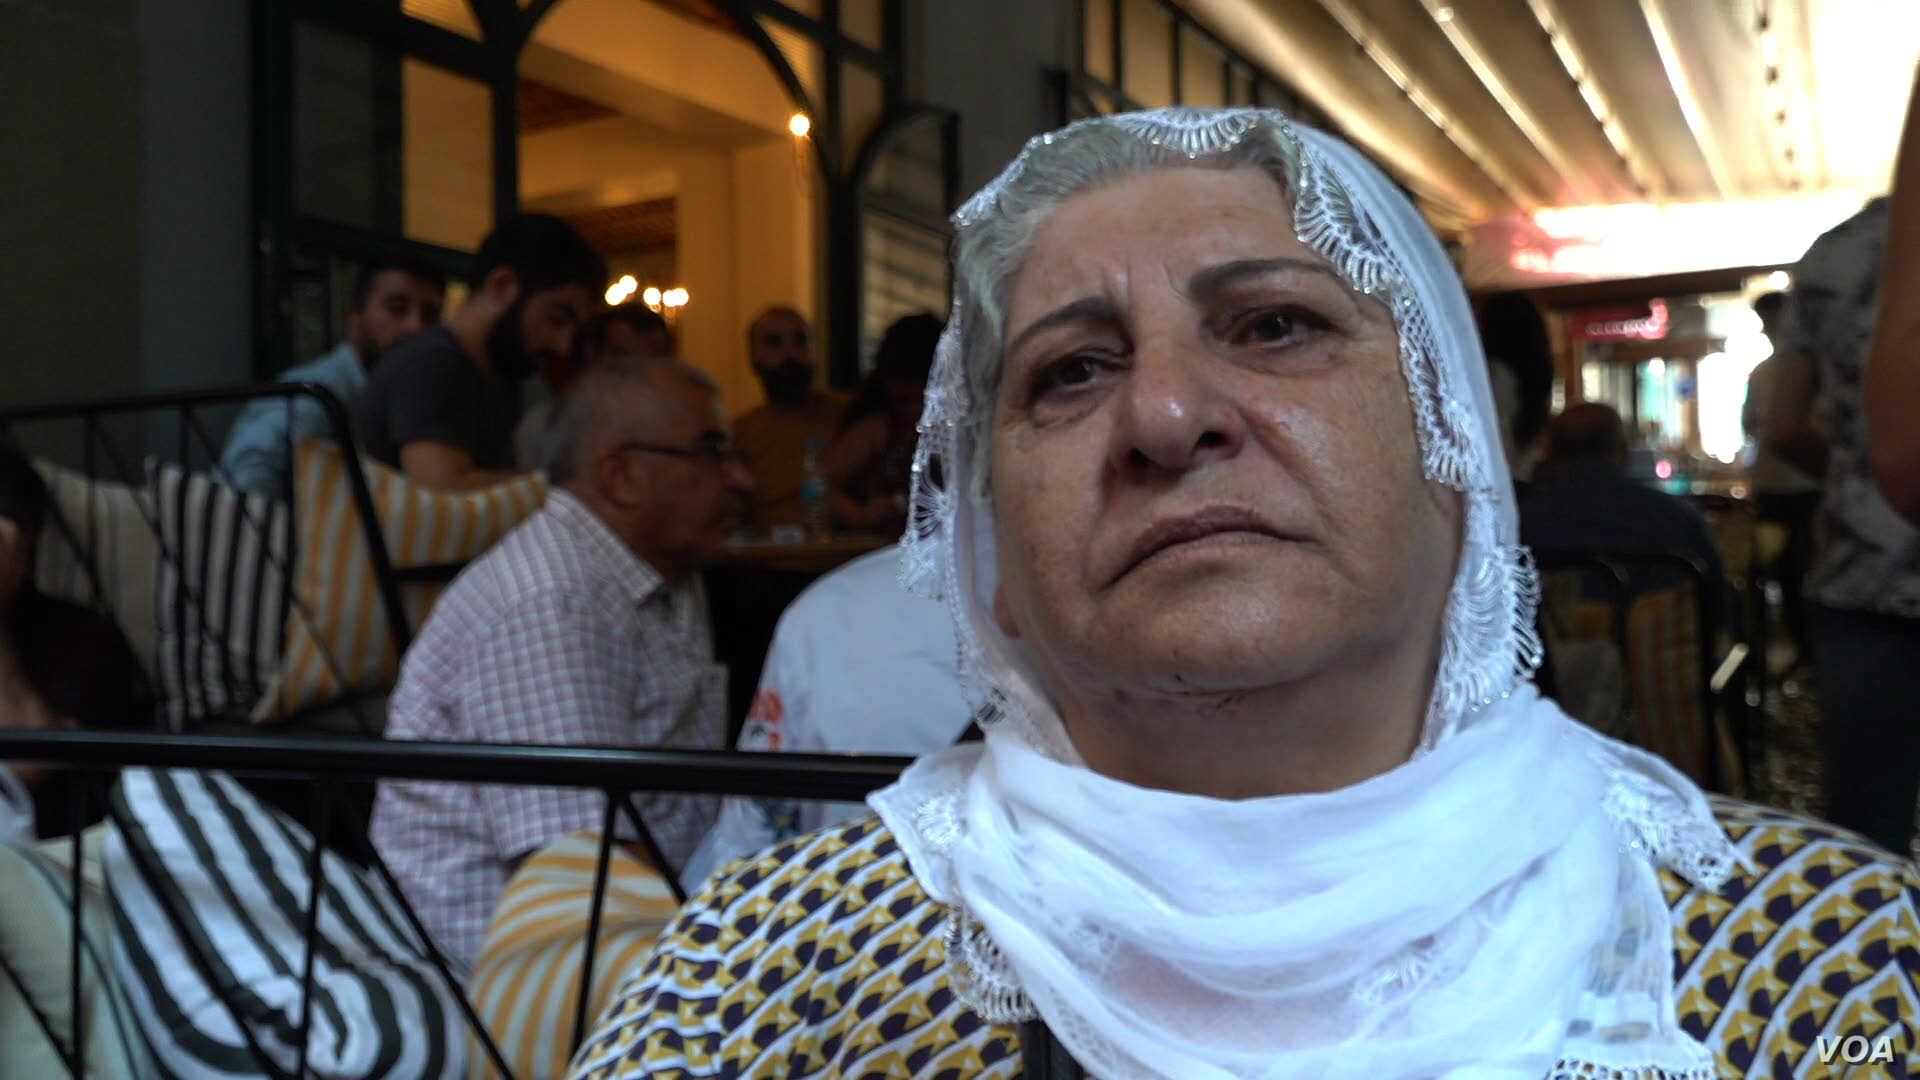 Halime Aydogan's husband disappeared during Turkish state war against Kurdish insurgents, for 15 years she has been protesting for find his remains and hold account those responsible.